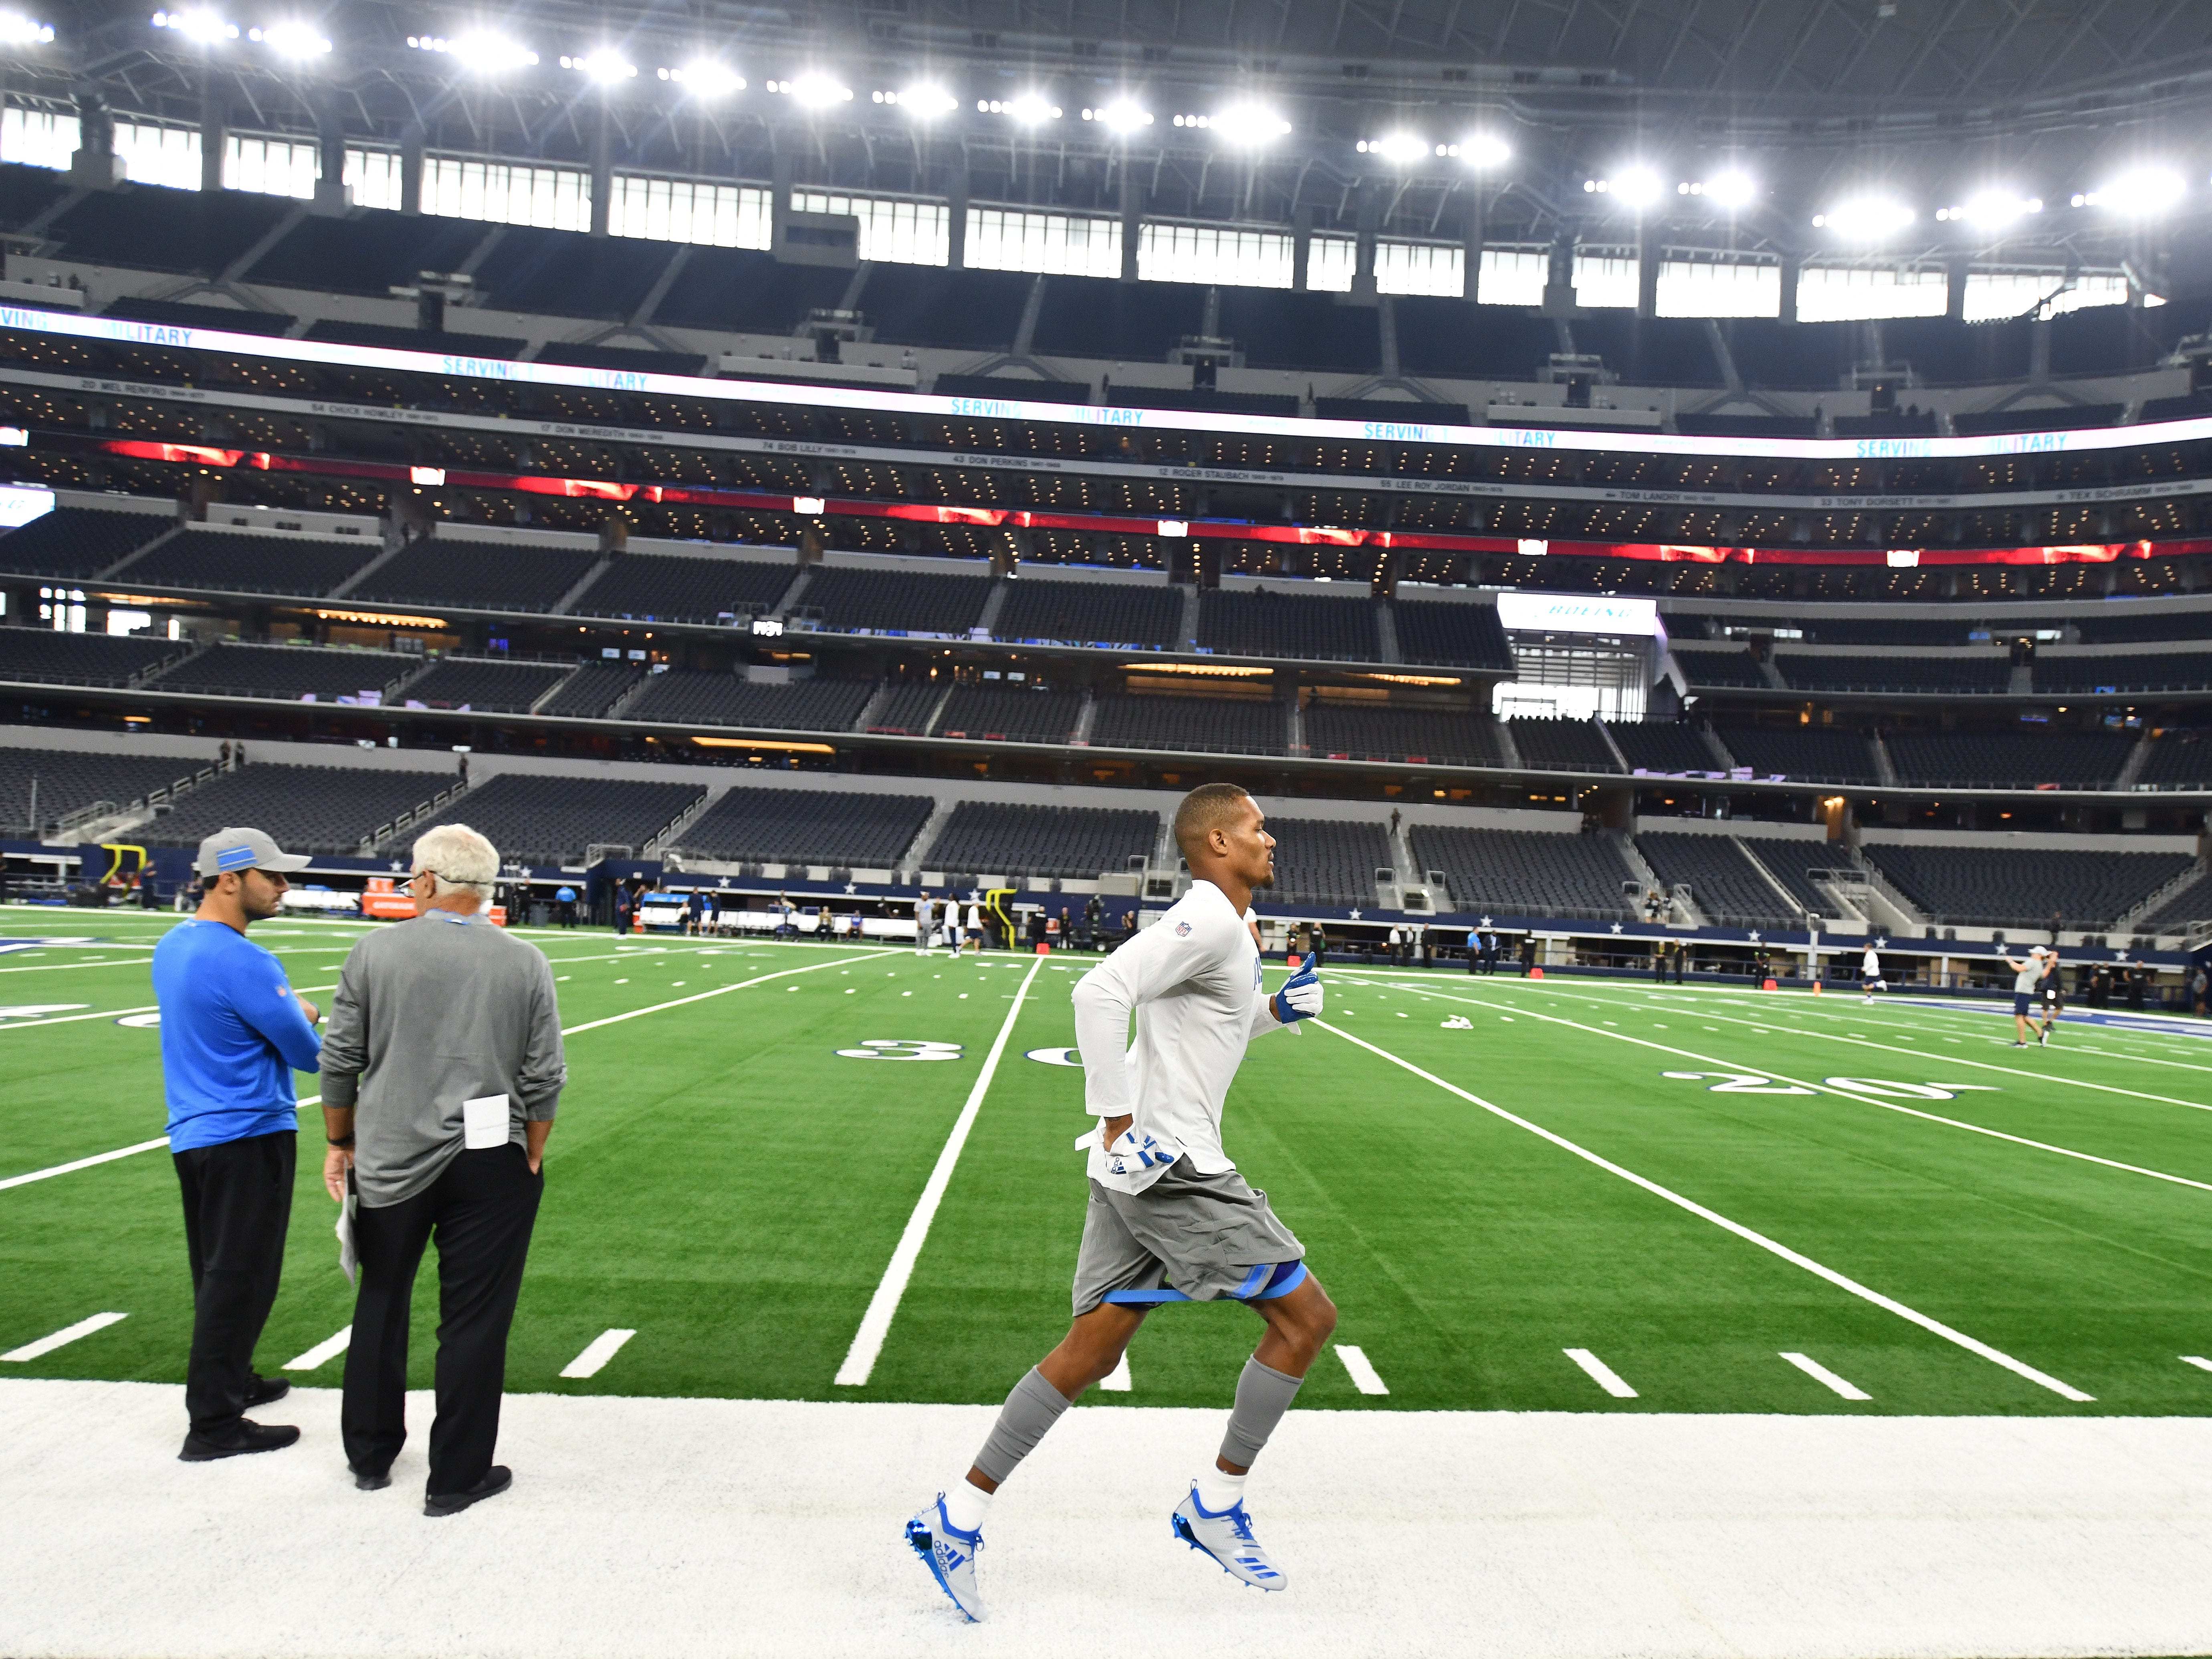 Lions wide receiver Kenny Golladay warms up running around the field during warmups.